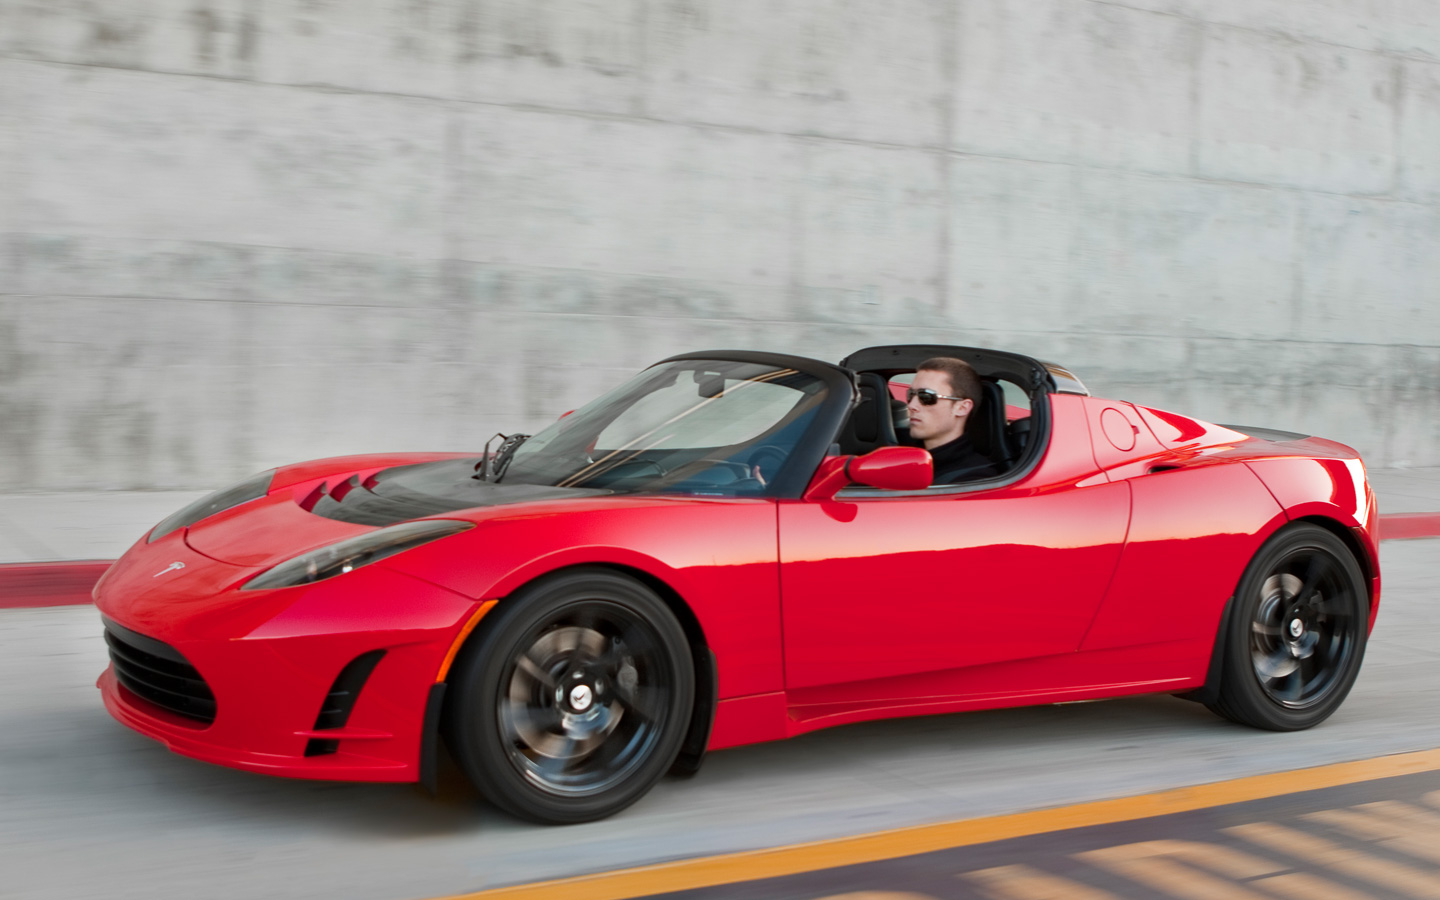 Tesla Update >> Tesla Roadster 3.0 Coming in August, Says Elon Musk on Twitter - autoevolution